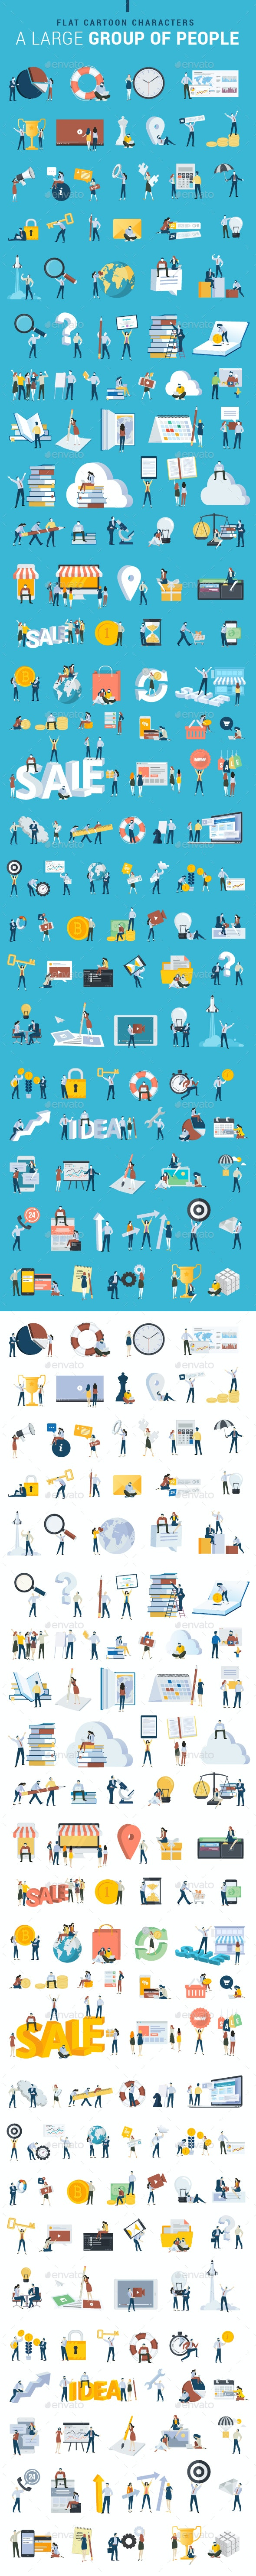 Flat Design Business People Icons - People Characters